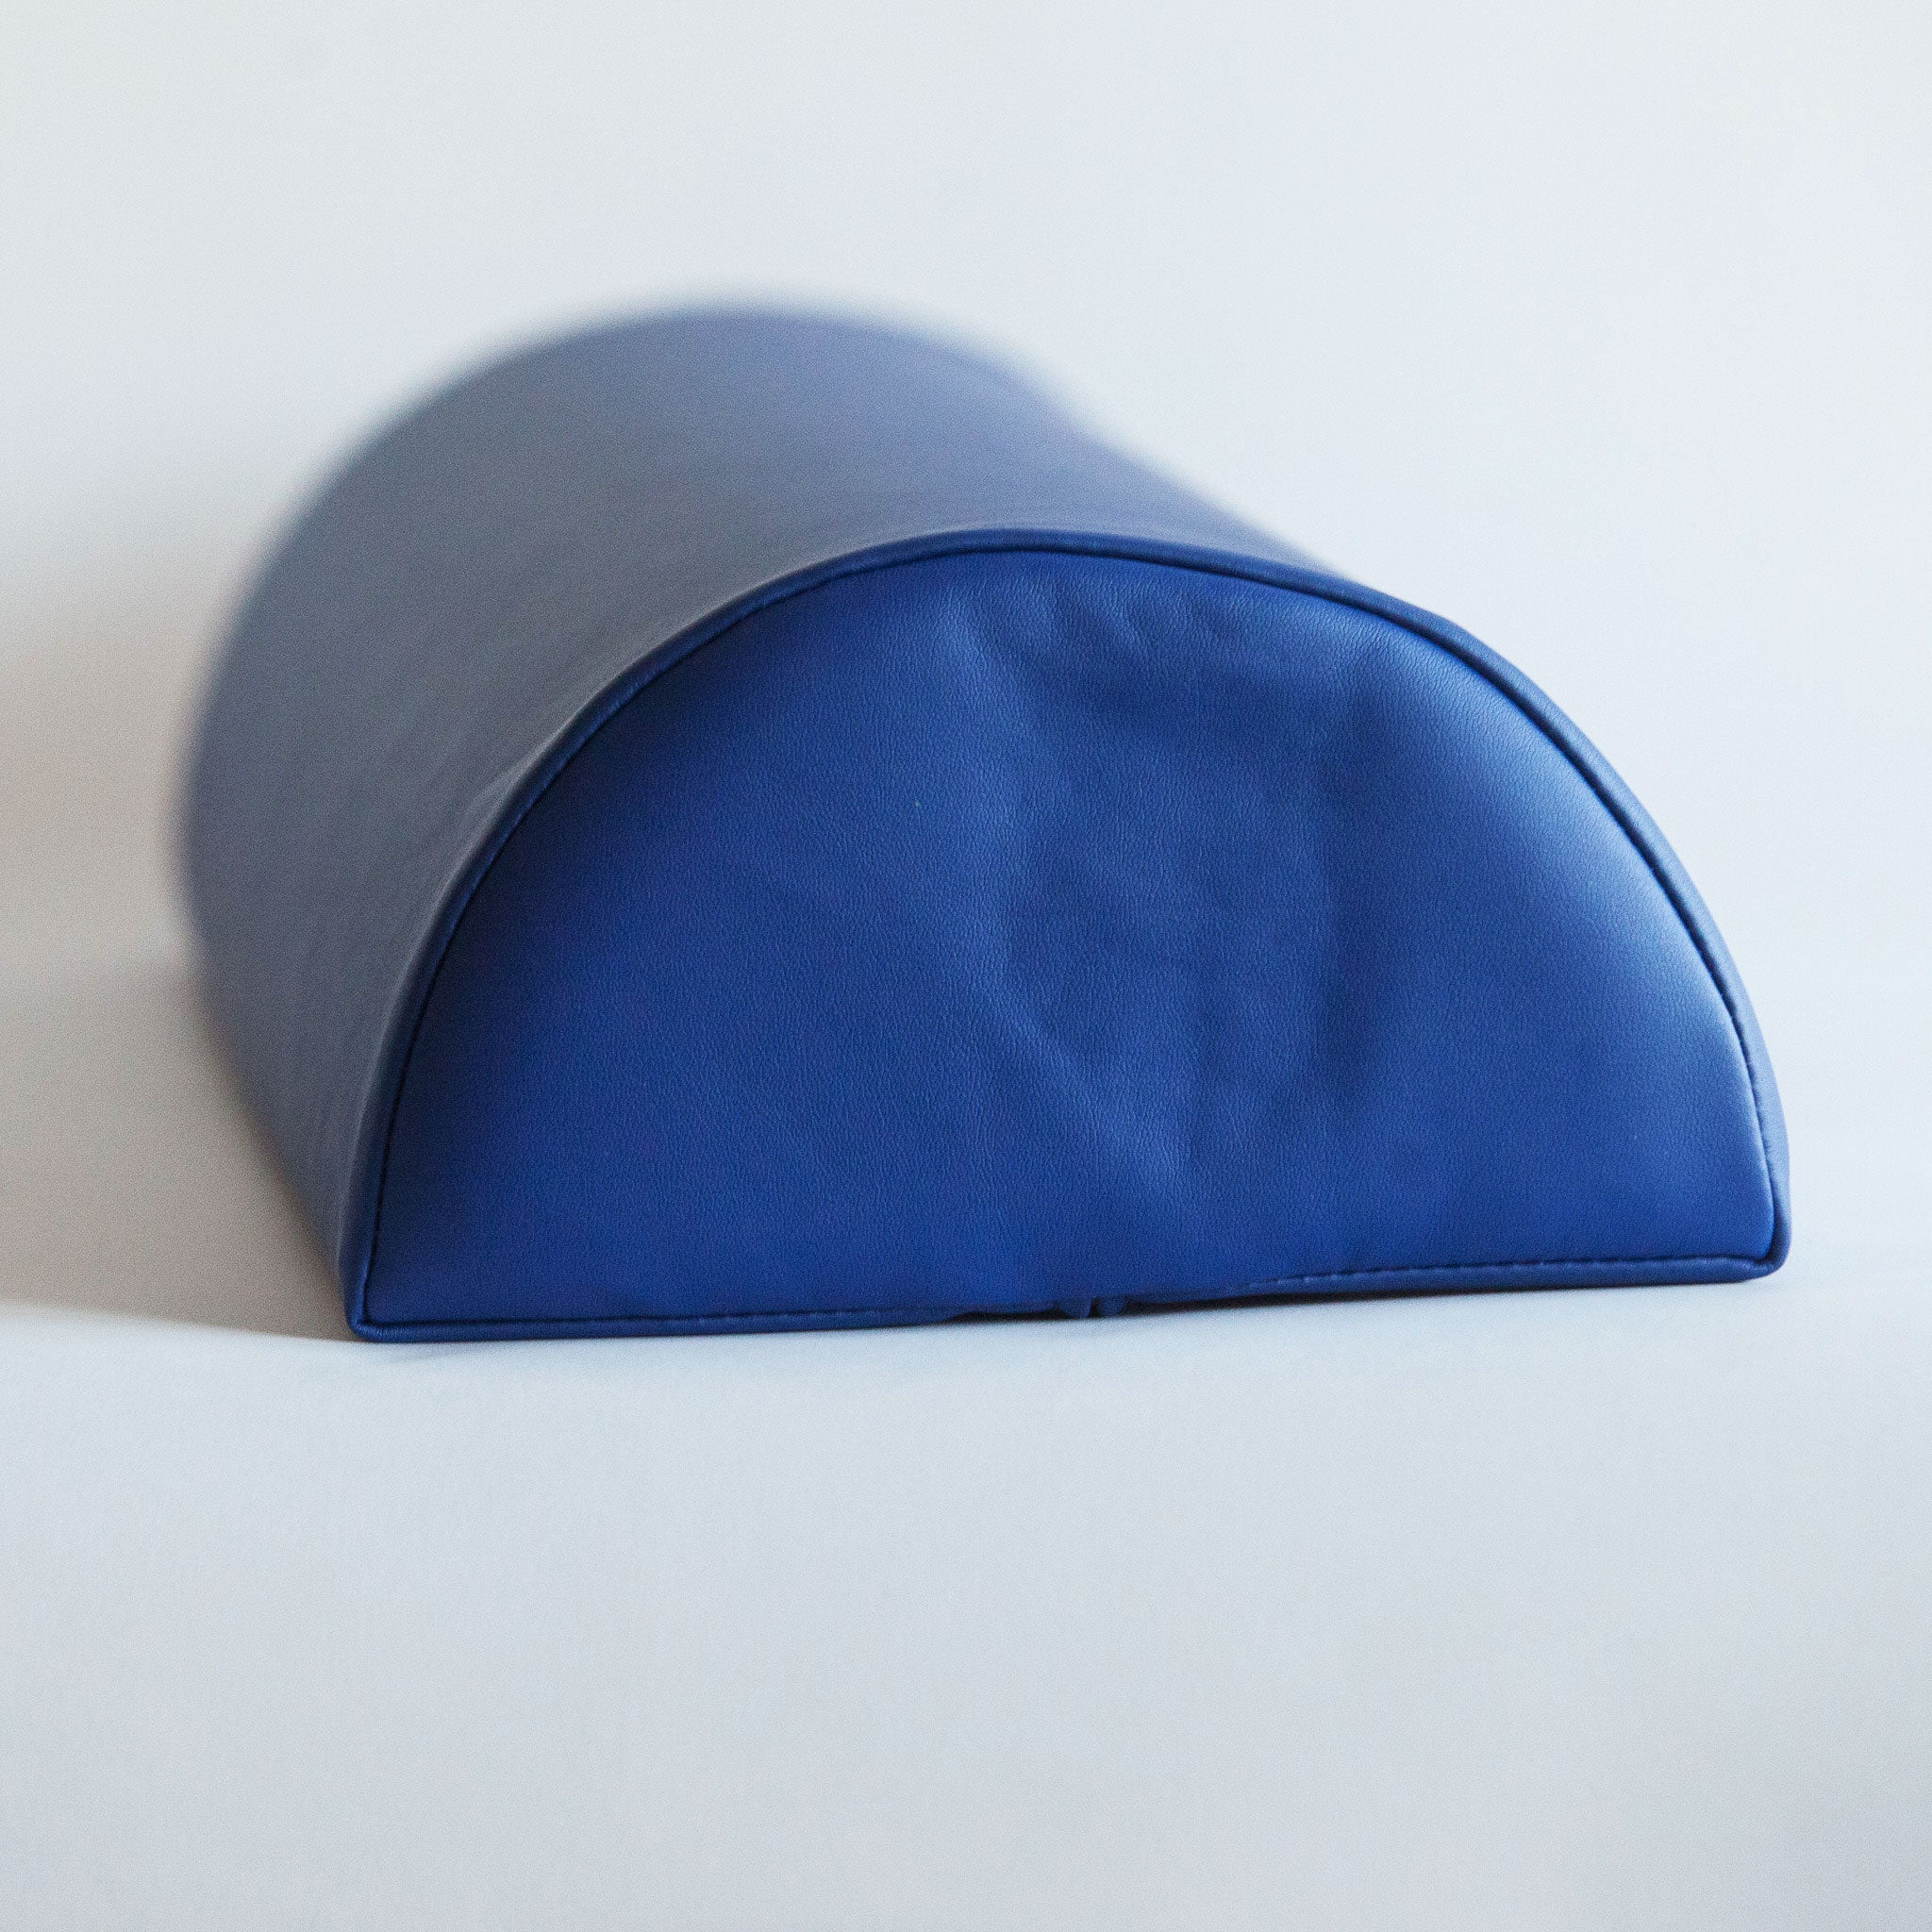 Large Semi-Round Bolster - for optimal Body Positioning